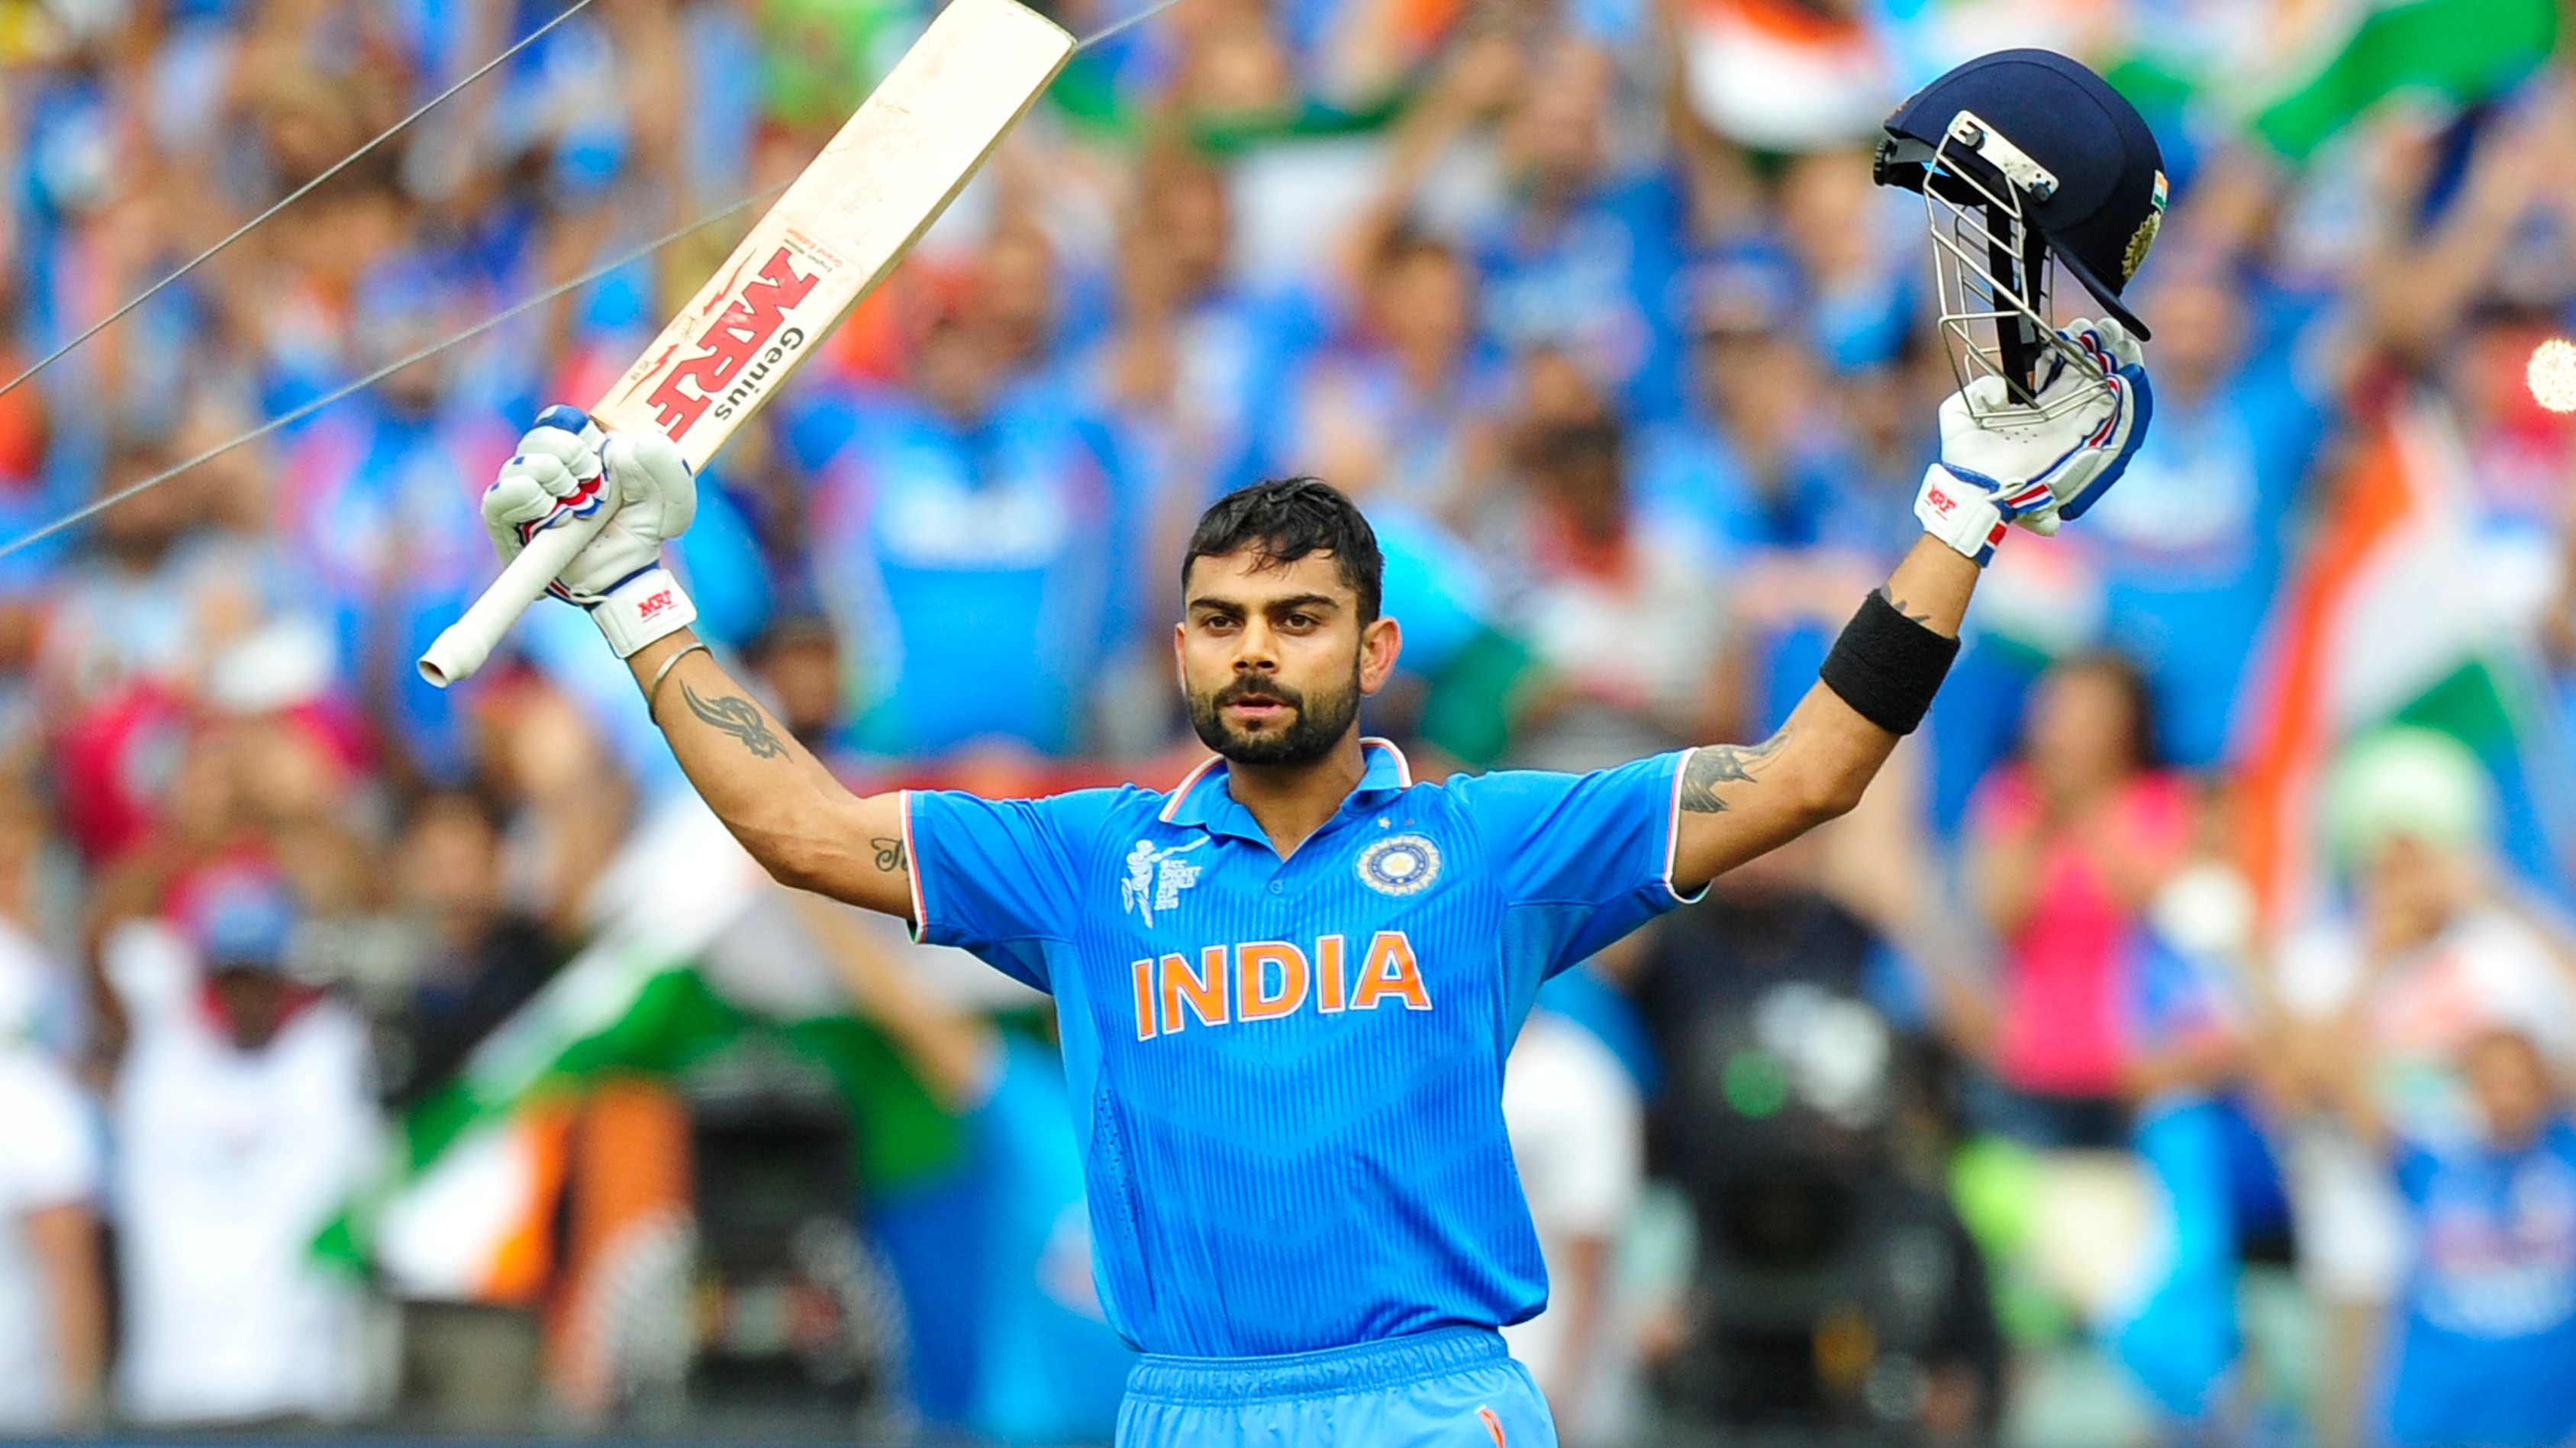 Indian Cricket Hd Wallpapers: India Beat Rivals Pakistan In Most Watched Cricket Match